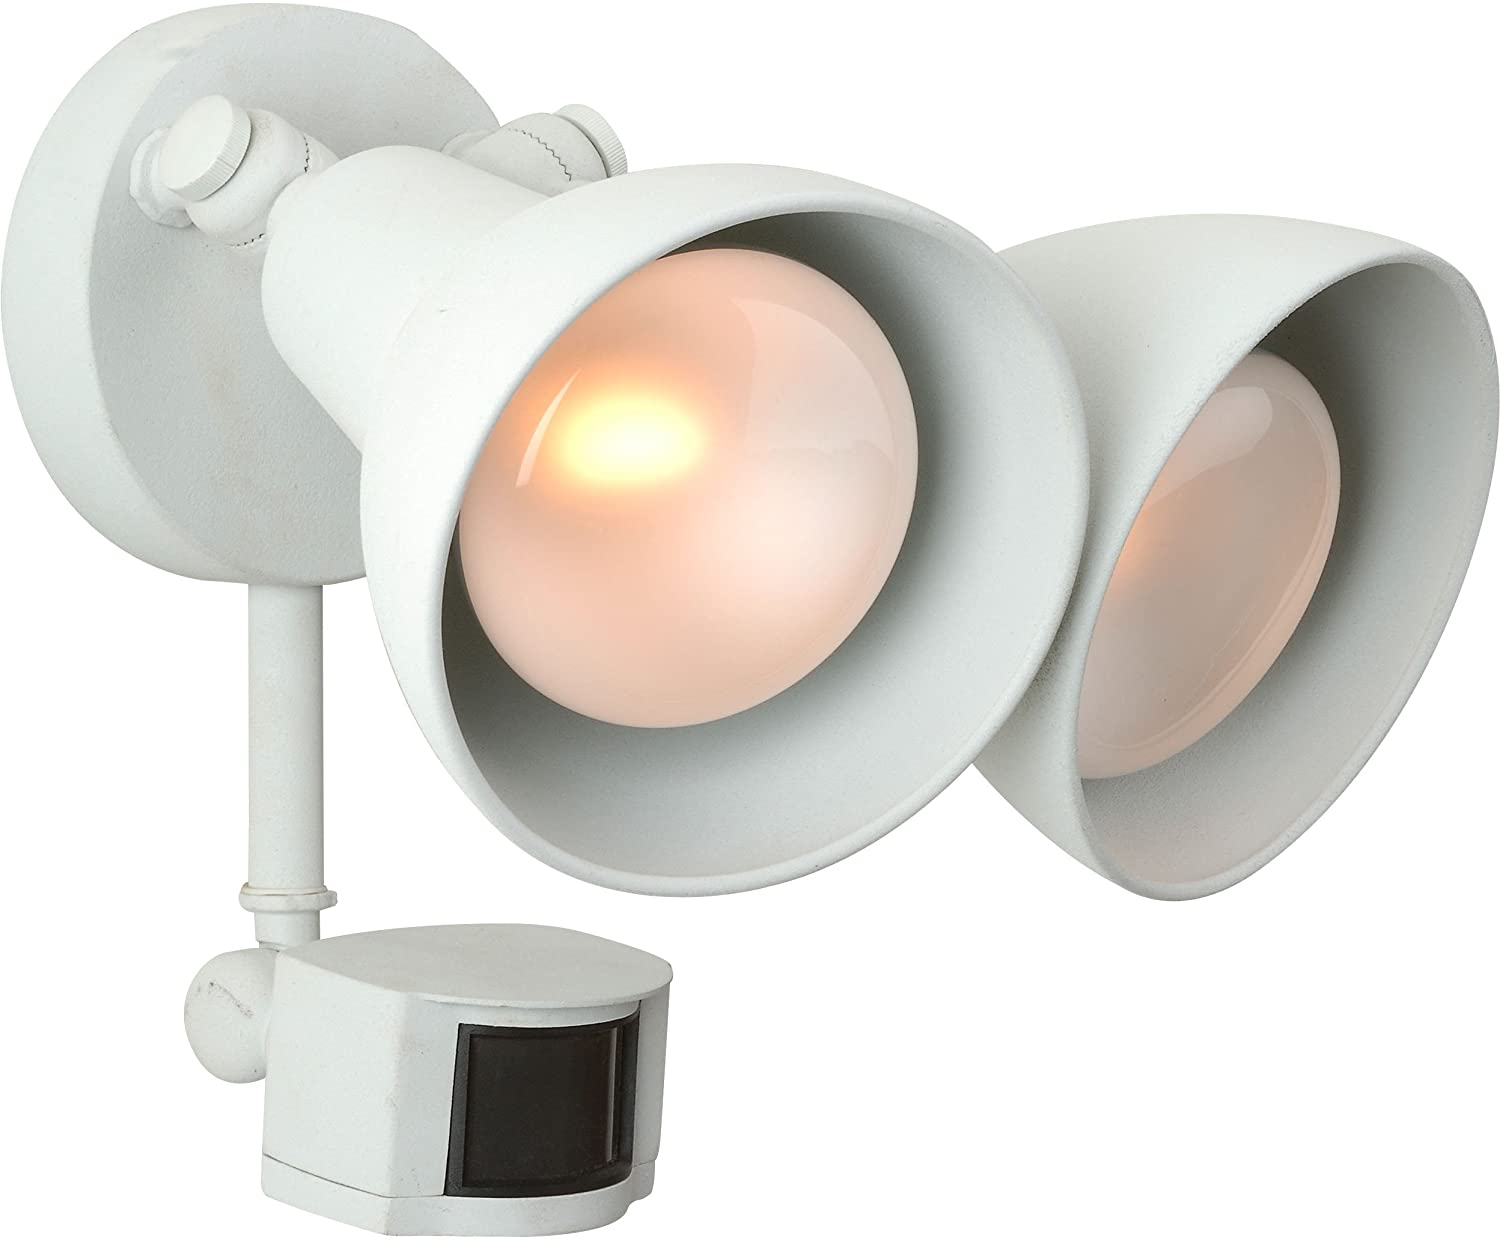 Craftmade Z402PM-05 Two Light Covered Flood with Motion Sensor